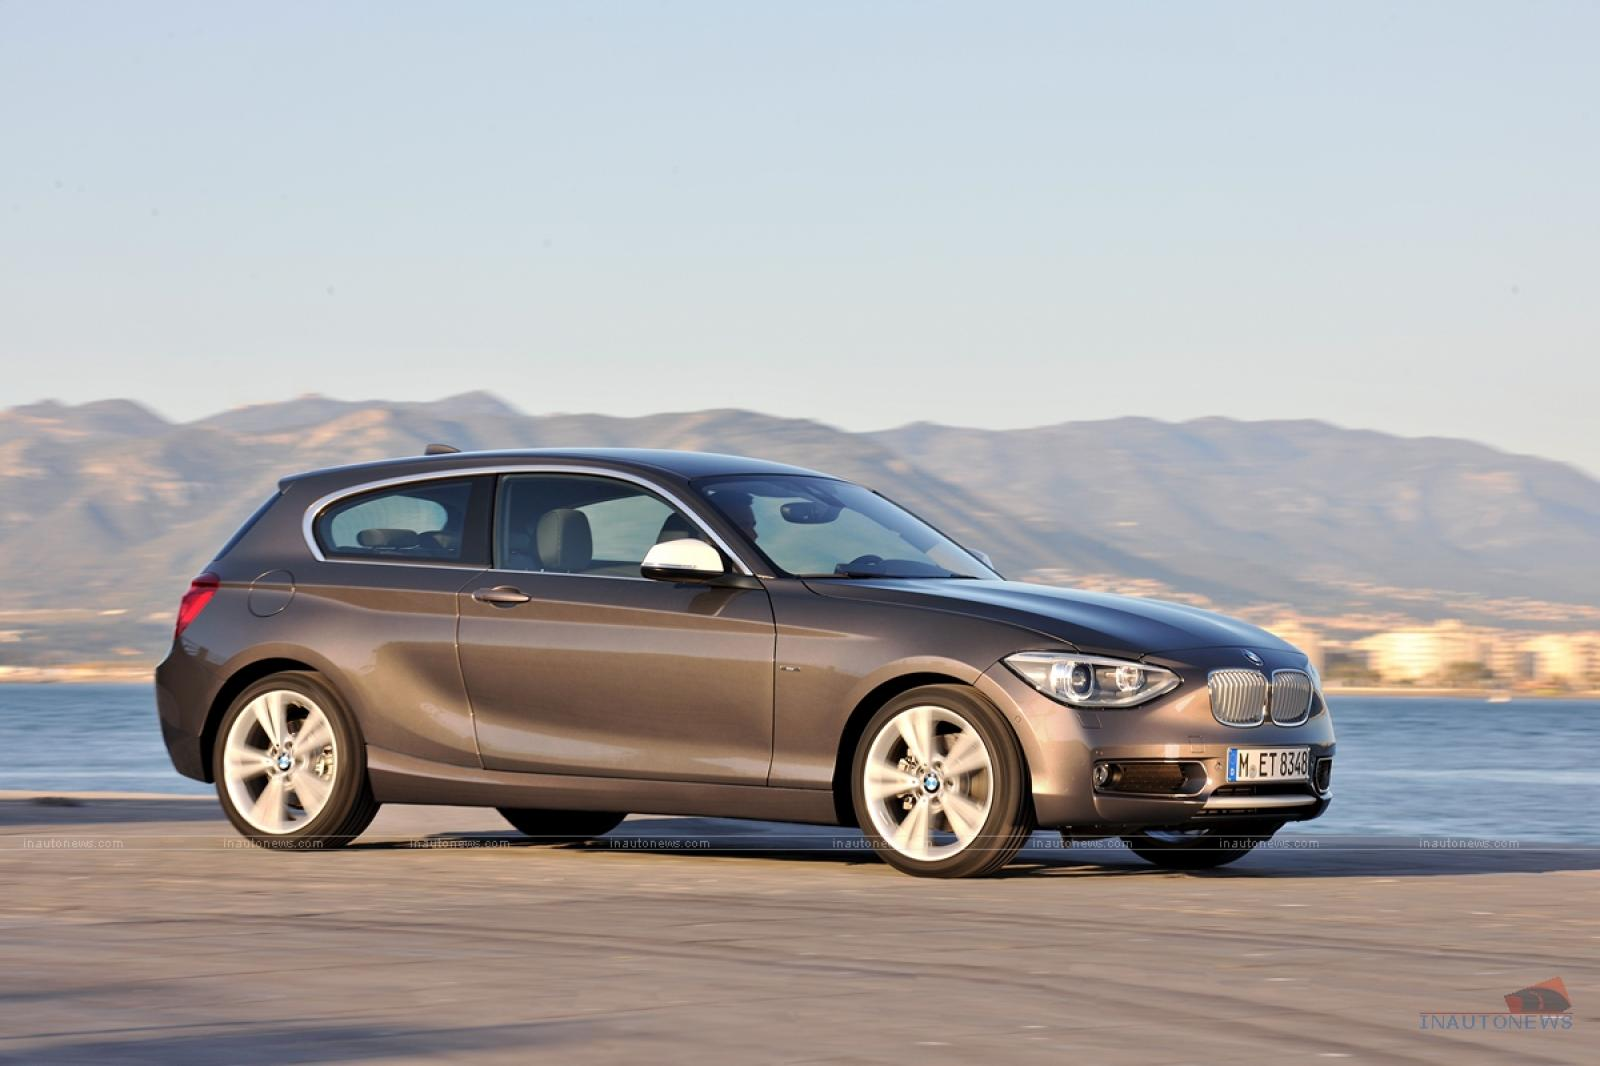 2013 BMW 1 Series - Information and photos - ZombieDrive